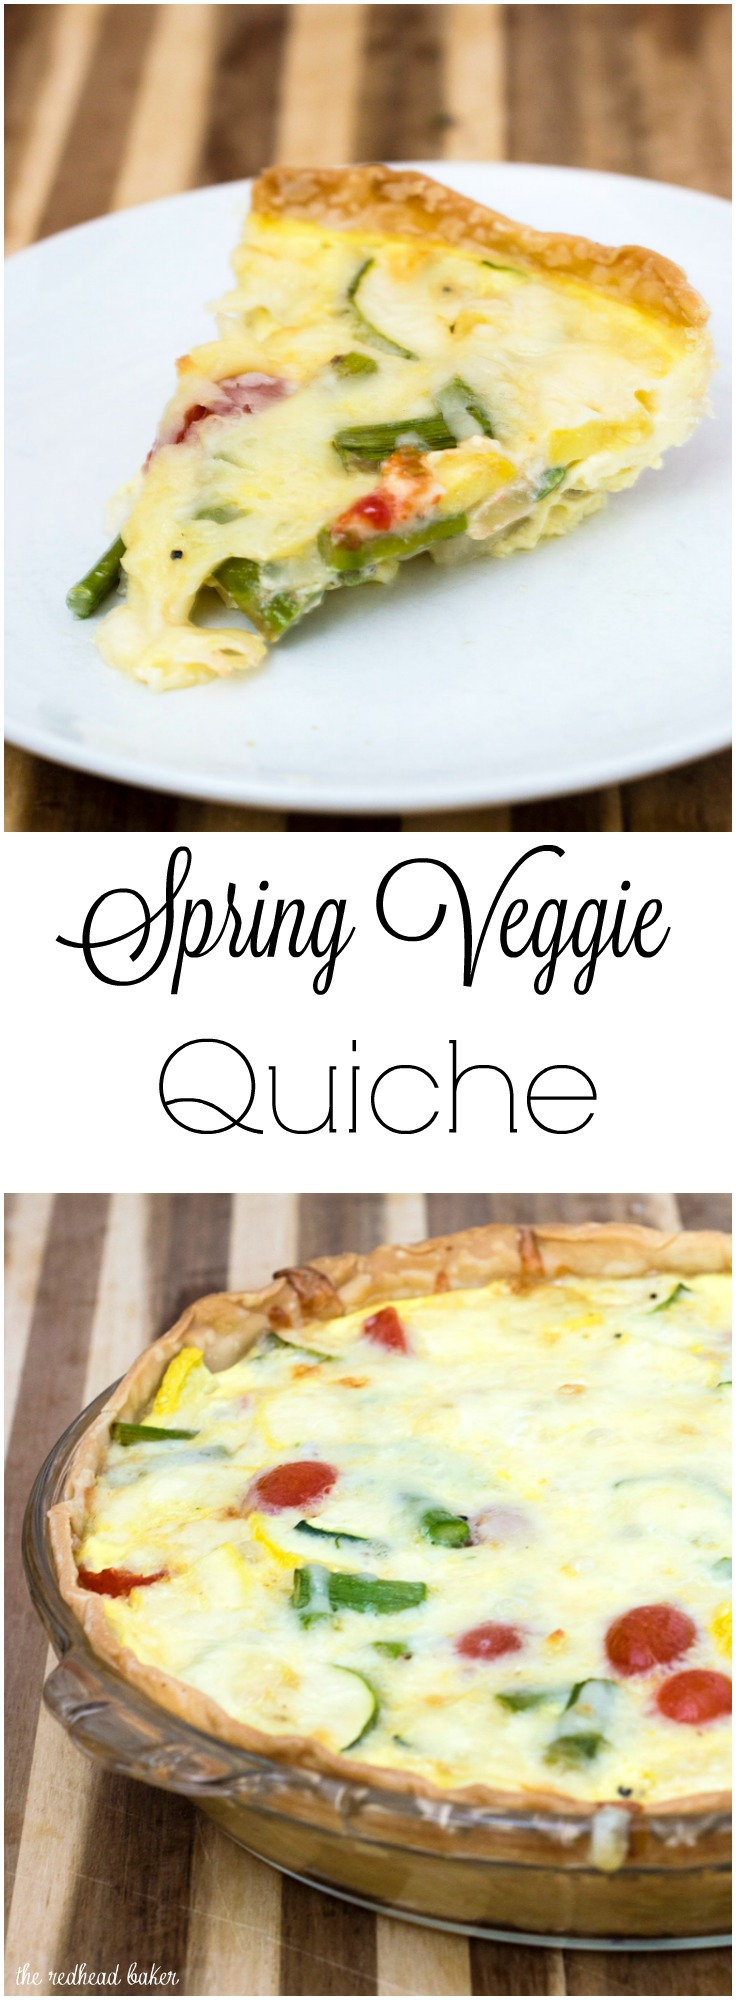 This veggie quiche is loaded with the freshest spring produce. It's a perfect make-ahead meal for breakfast, brunch or dinner! #WhatsBaking TheRedheadBaker.com